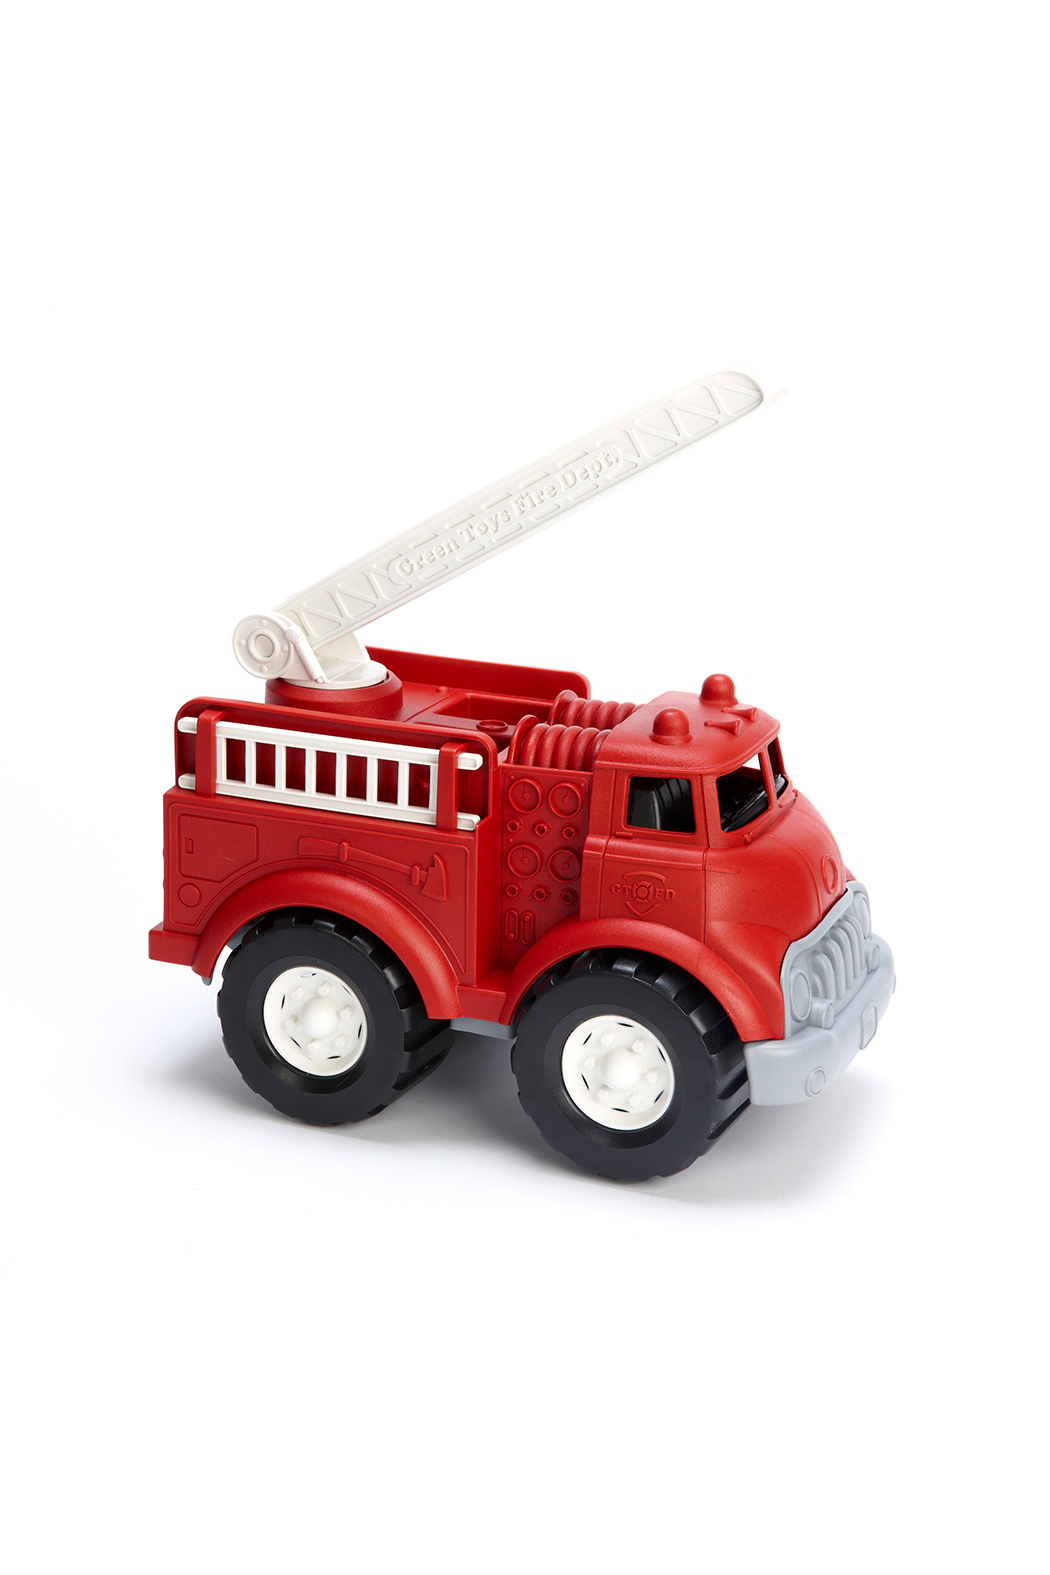 Green Toys Fire Truck Red - Main Image